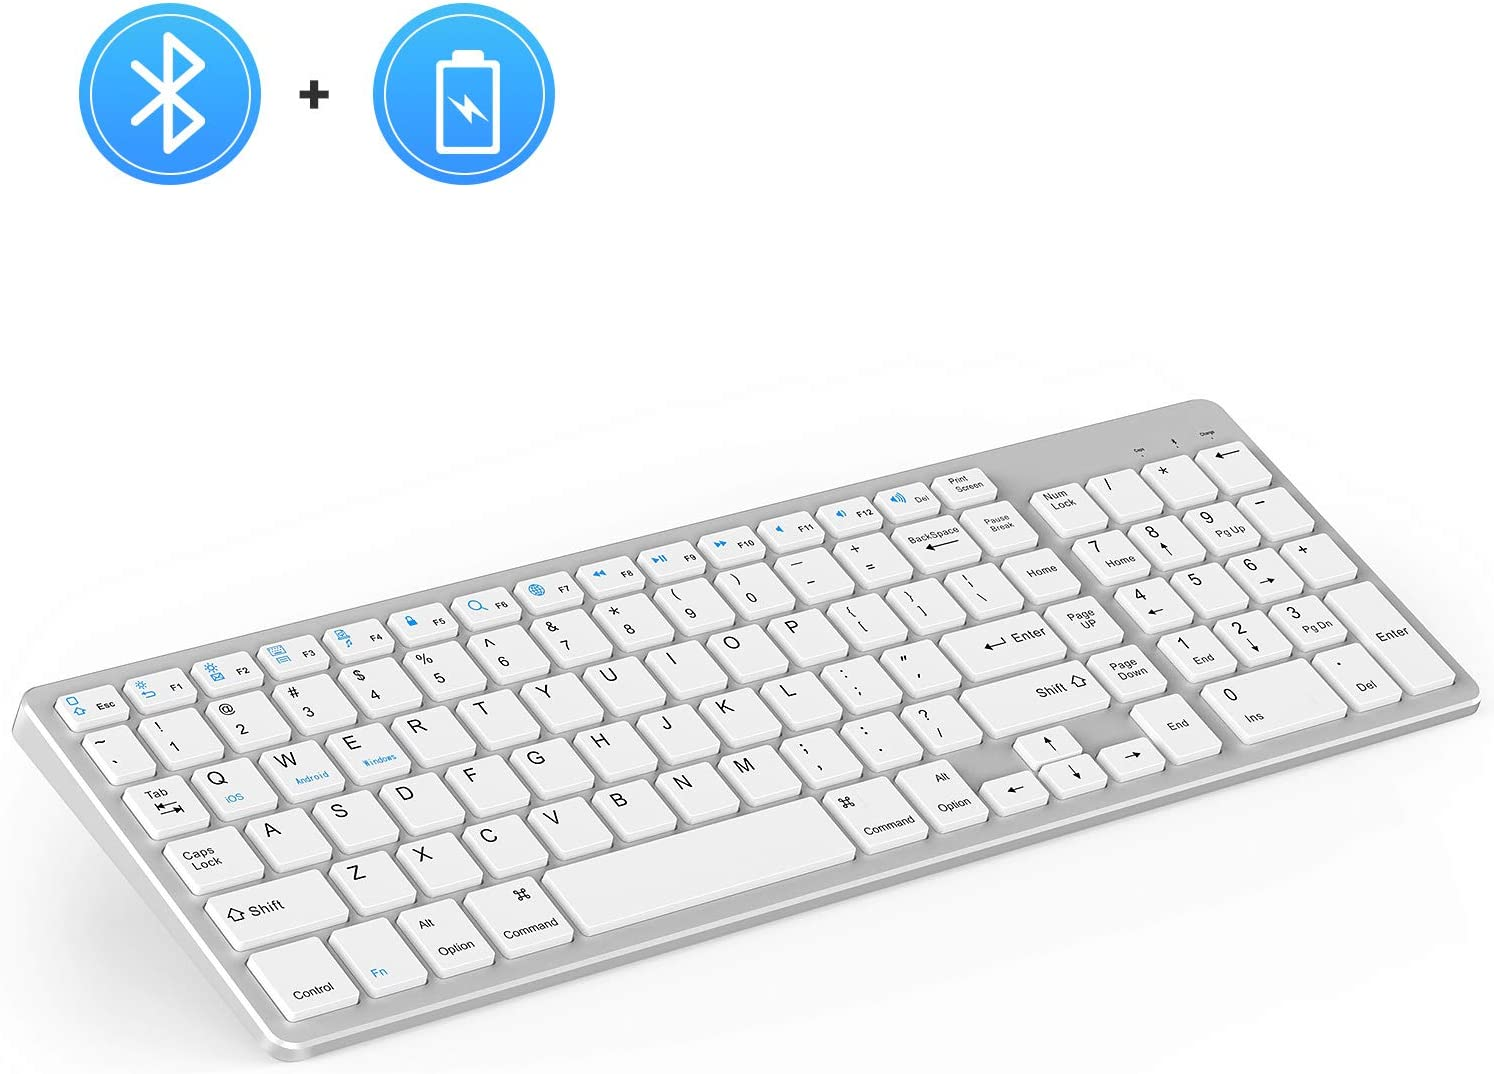 Rechargeable Bluetooth Keyboard, Jelly Comb Wireless Slim Keyboard with Number Pad Full Size Design for Windows iOS Android, Laptop Desktop PC Tablet-White and Silver